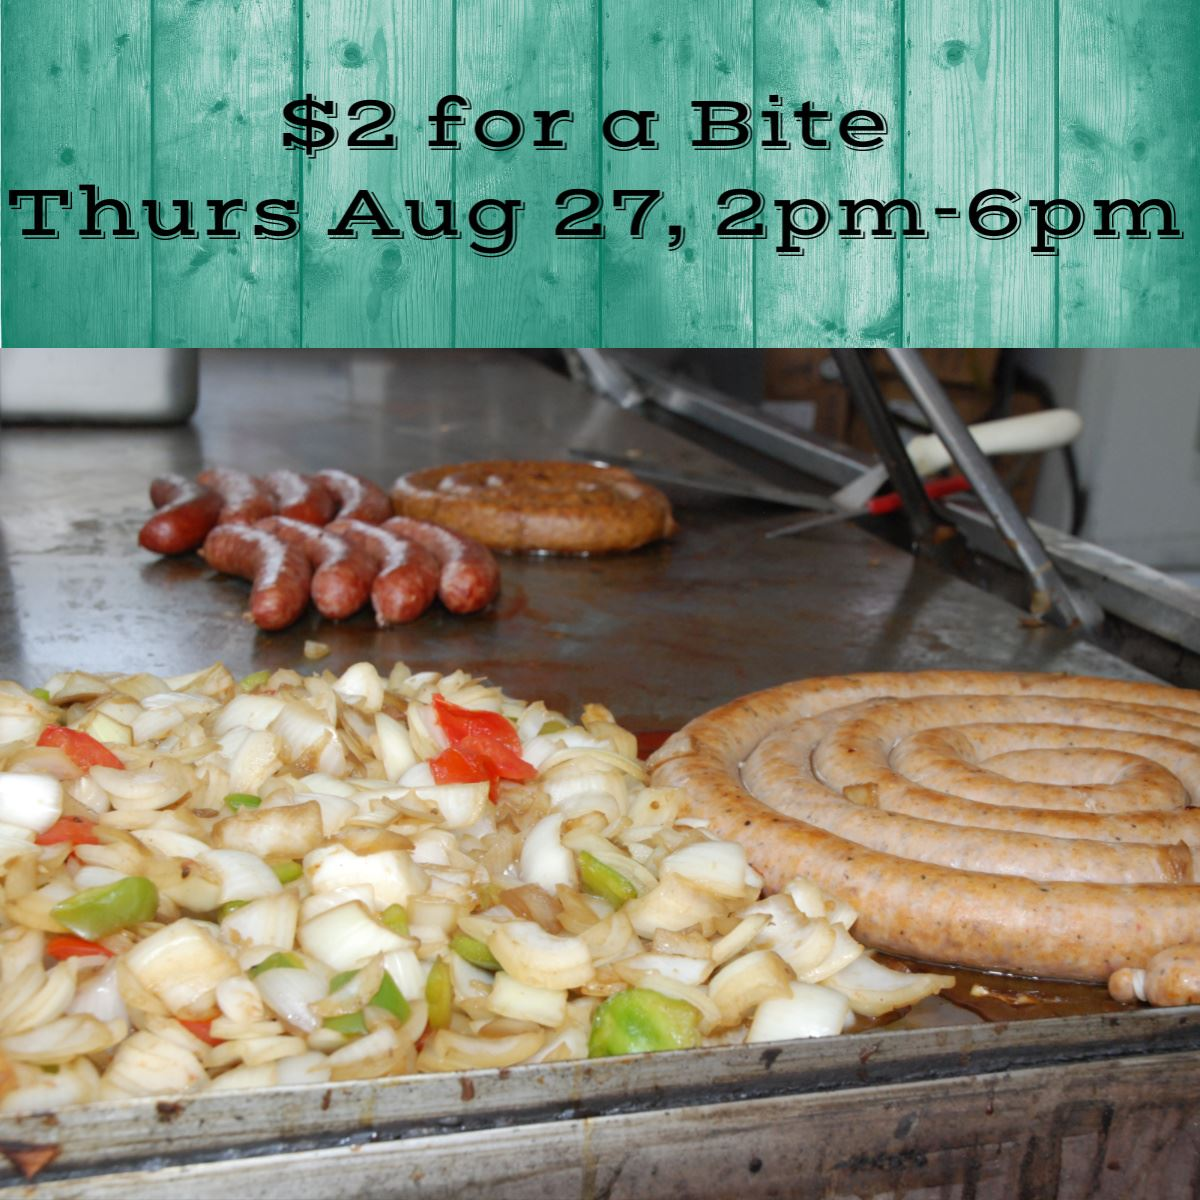 $2 for a Bite, image of sausage and onions